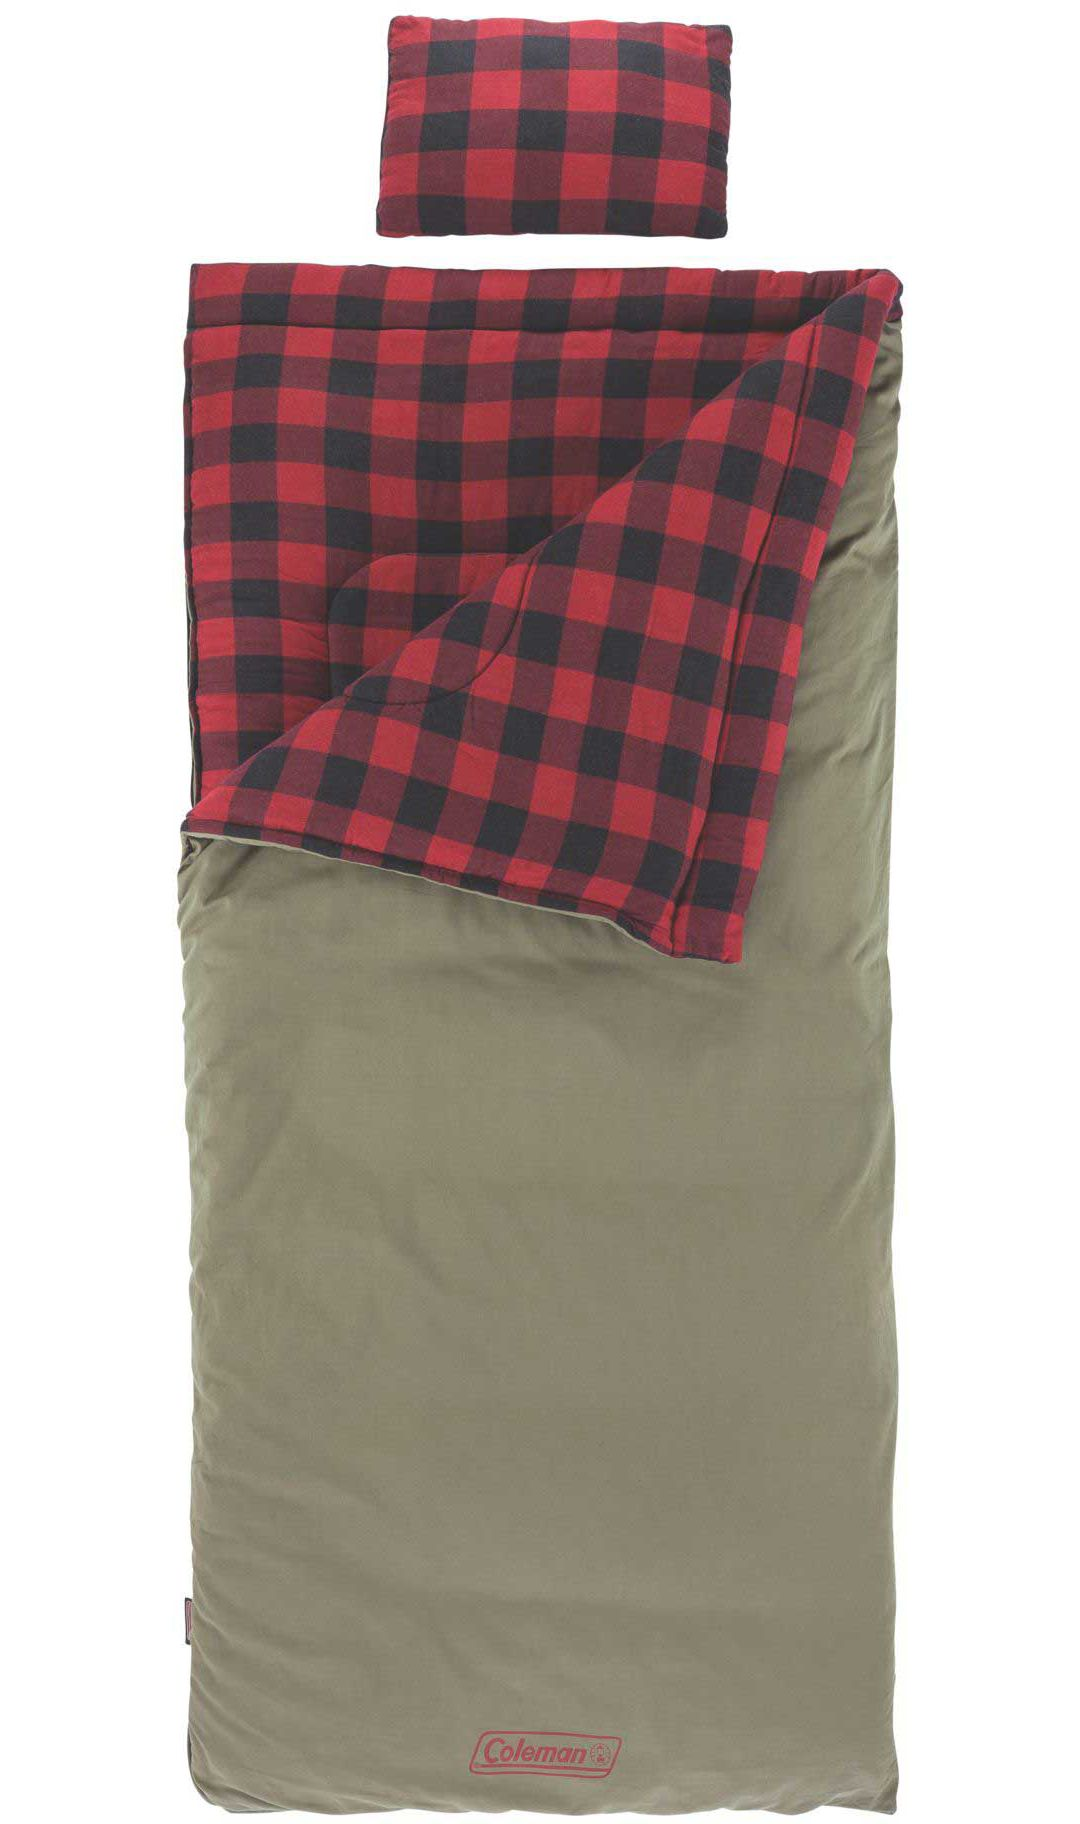 Coleman Tall 0 Sleeping Bag With Pillow